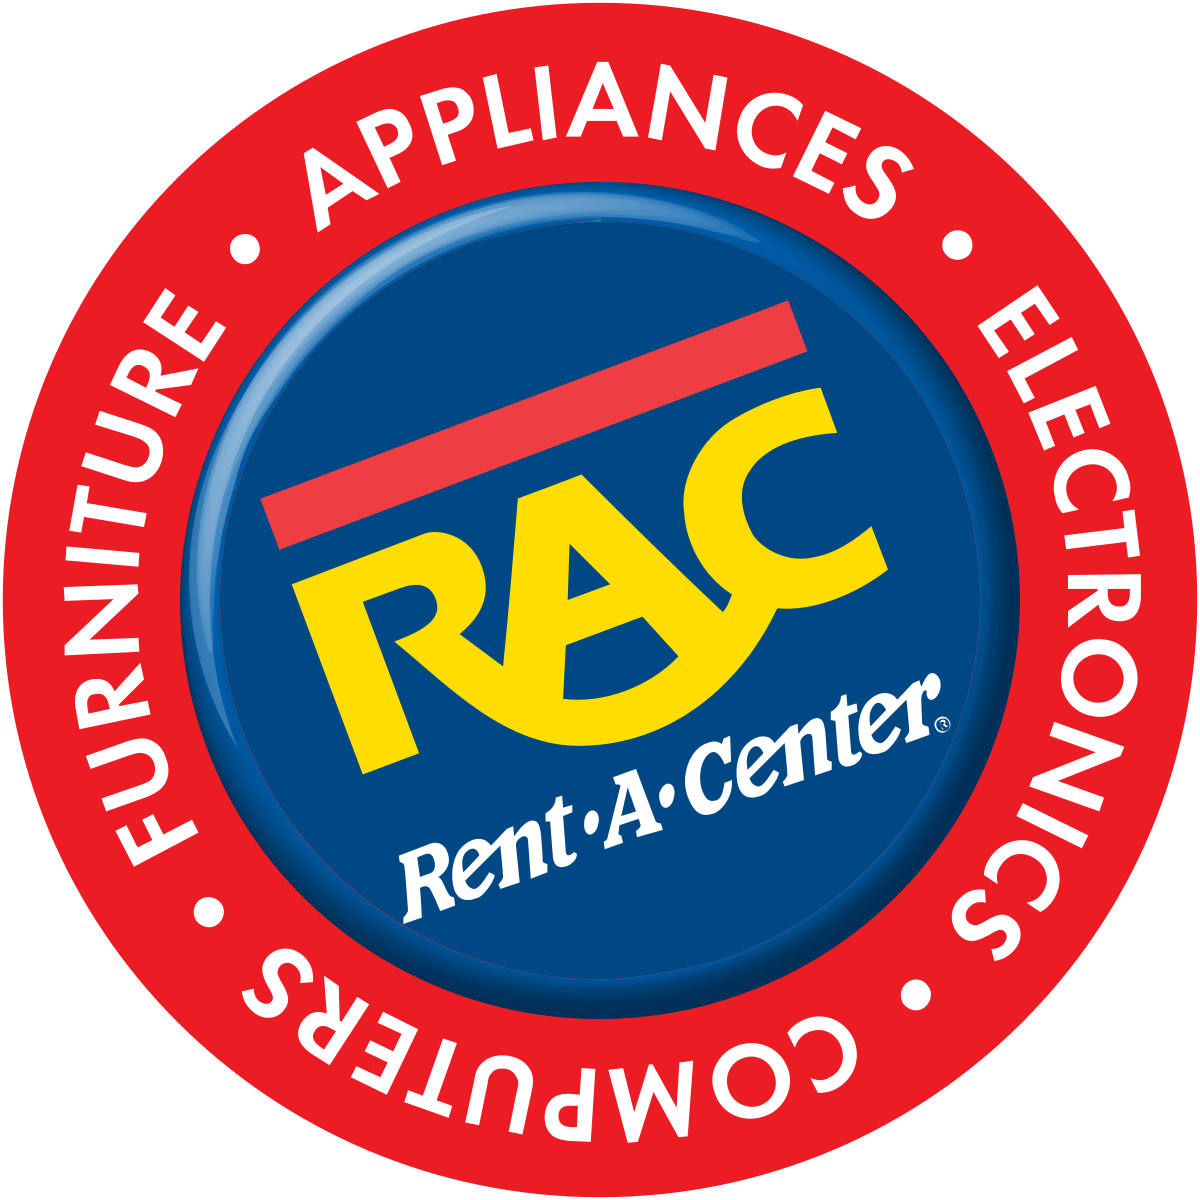 rent a center logo png